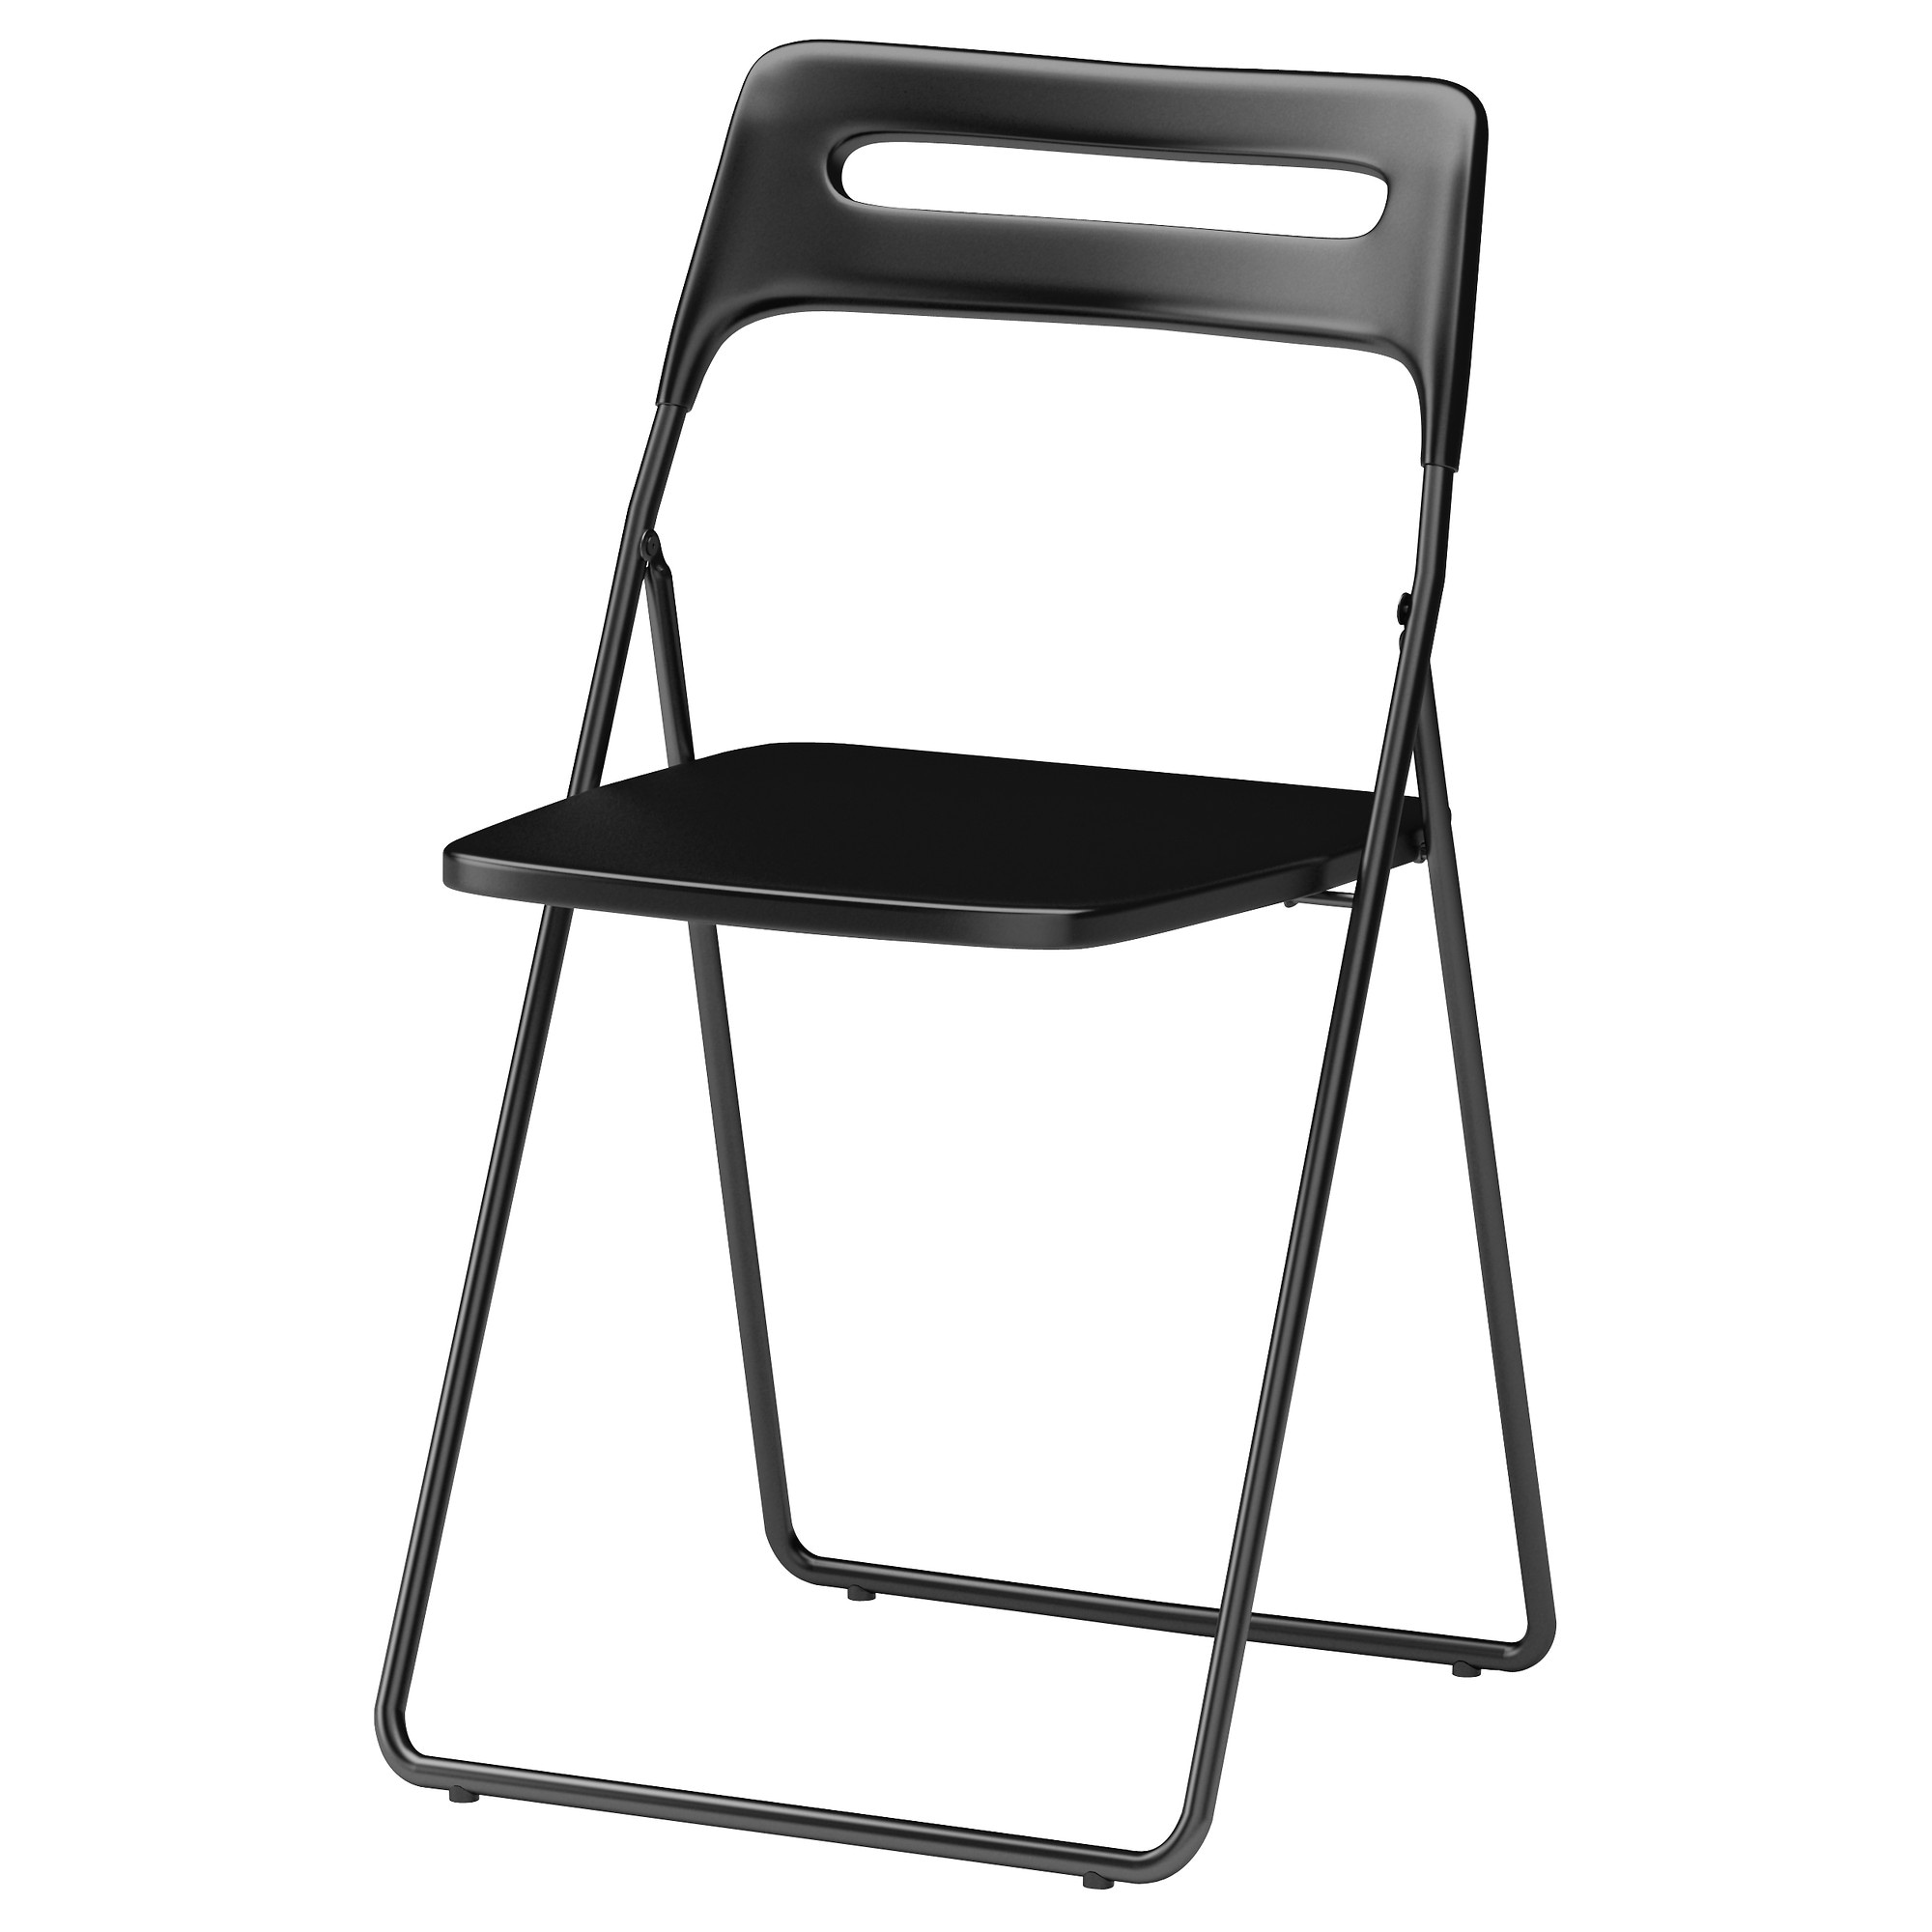 Folding chairs - Dining chairs - IKEA